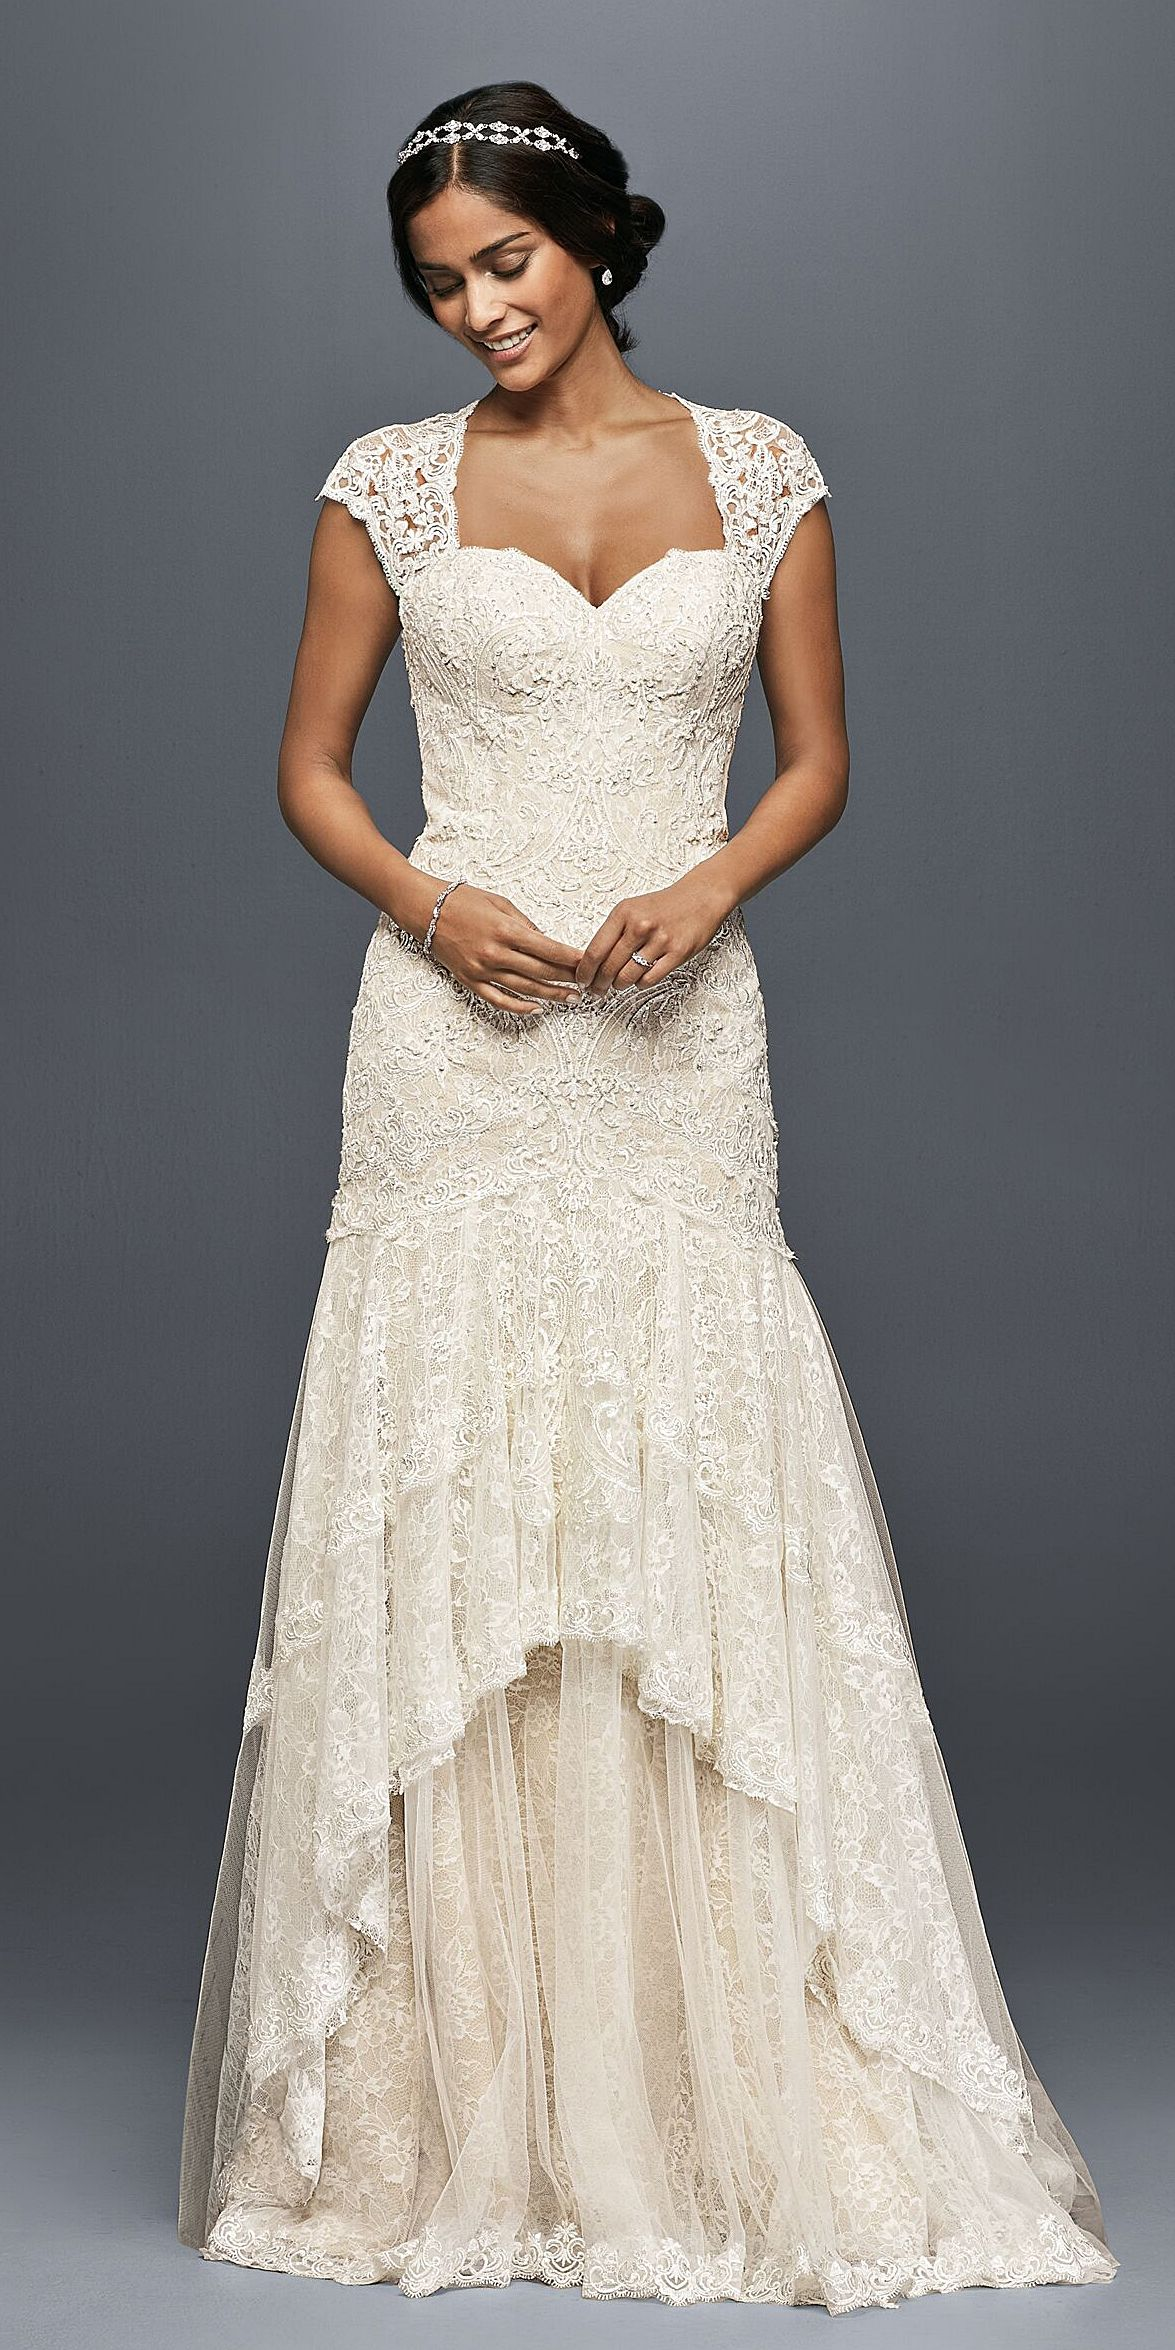 Tiered lace mermaid wedding dress with beading david 39 s for Lace wedding dress davids bridal